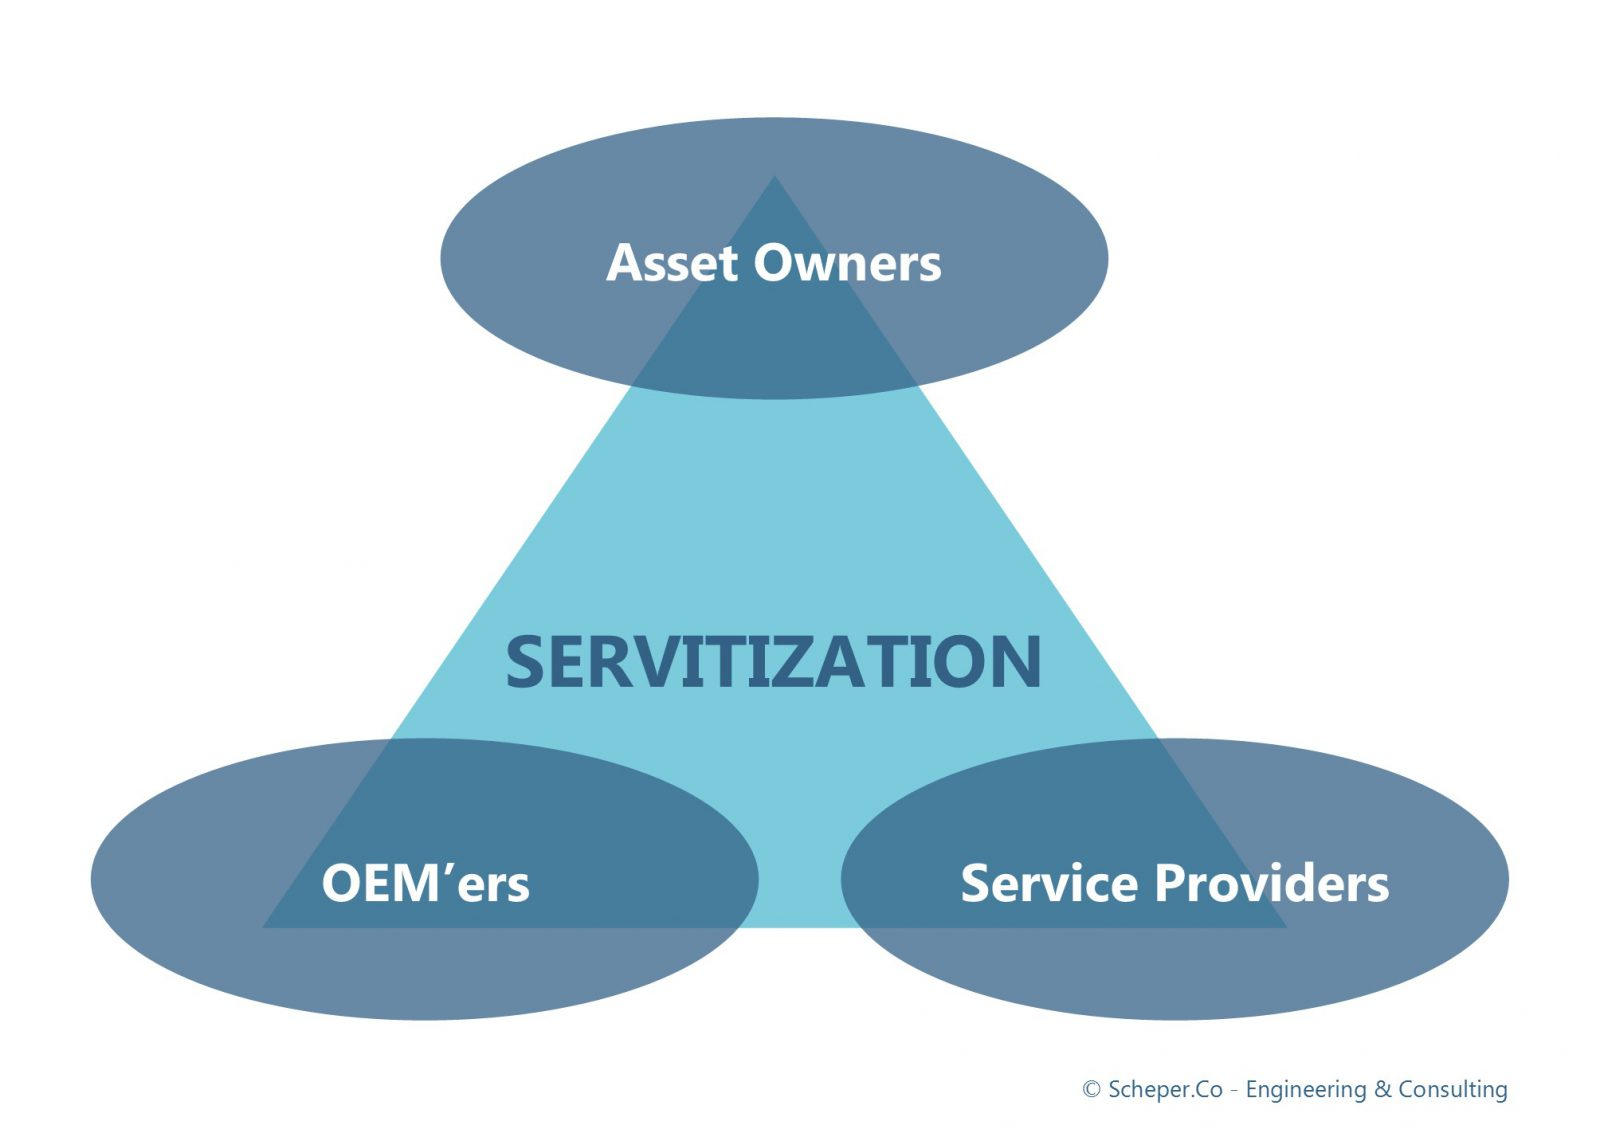 Servitization, Product-as-a-Service, PRODUCT MANUFACTURER, INTEGRATED SOLUTION PROVIDER, Just-in-Time, Fit-for-Use, Smart-Workforce, LabelBlue